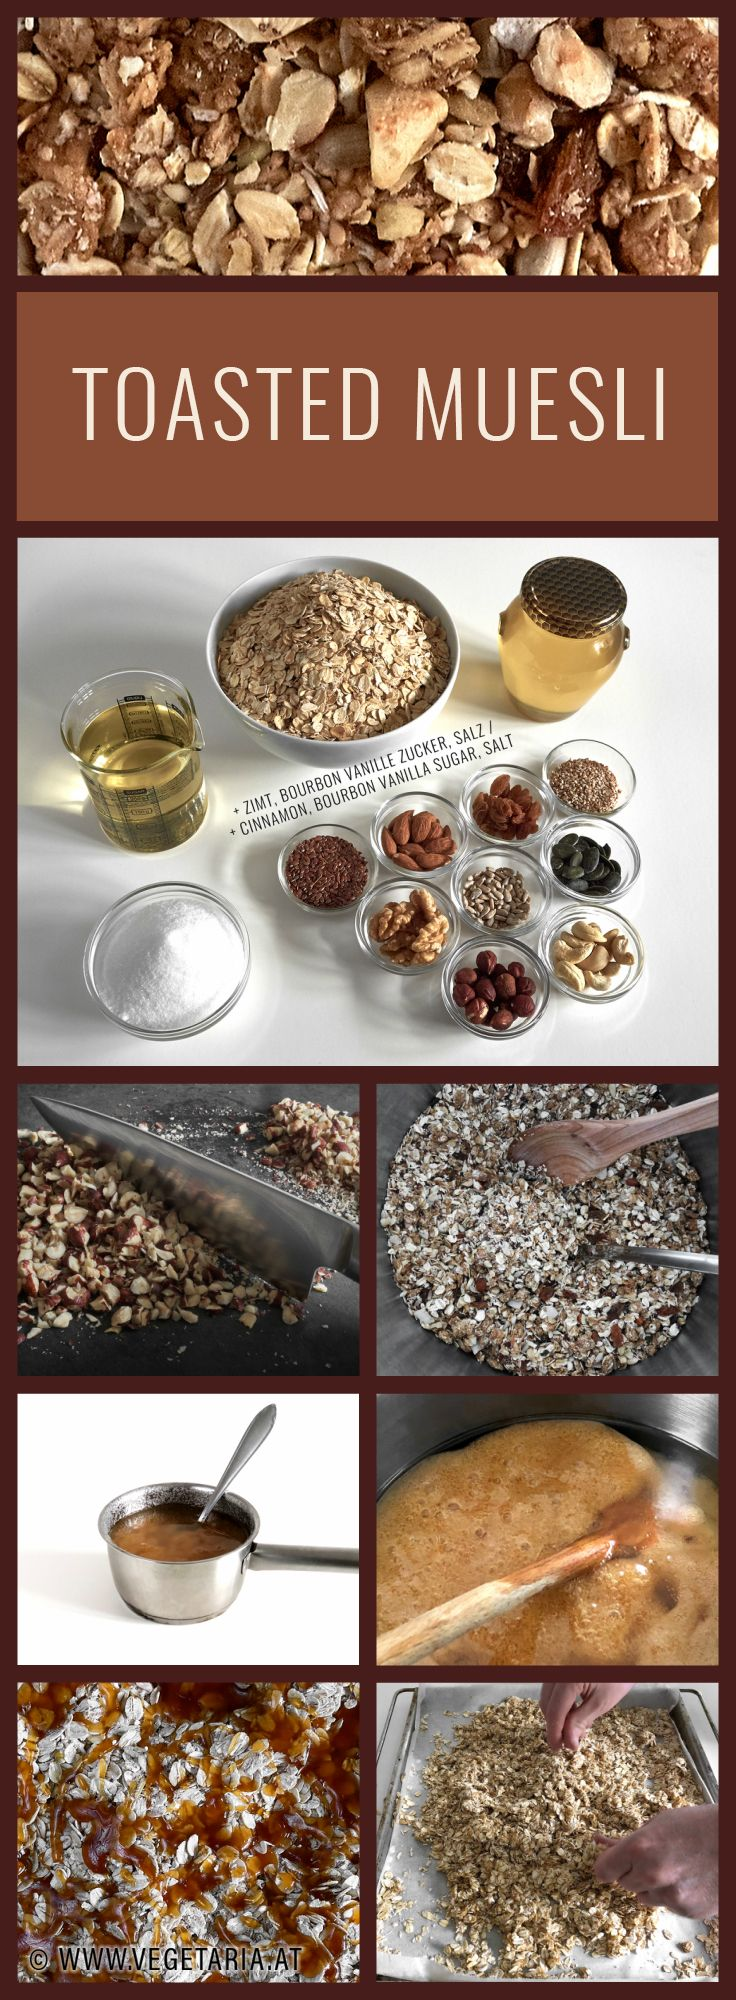 Make your own muesli, just the way you like it! Be warned, once you've tasted this you'll never be satisfied with store bought muesli again.